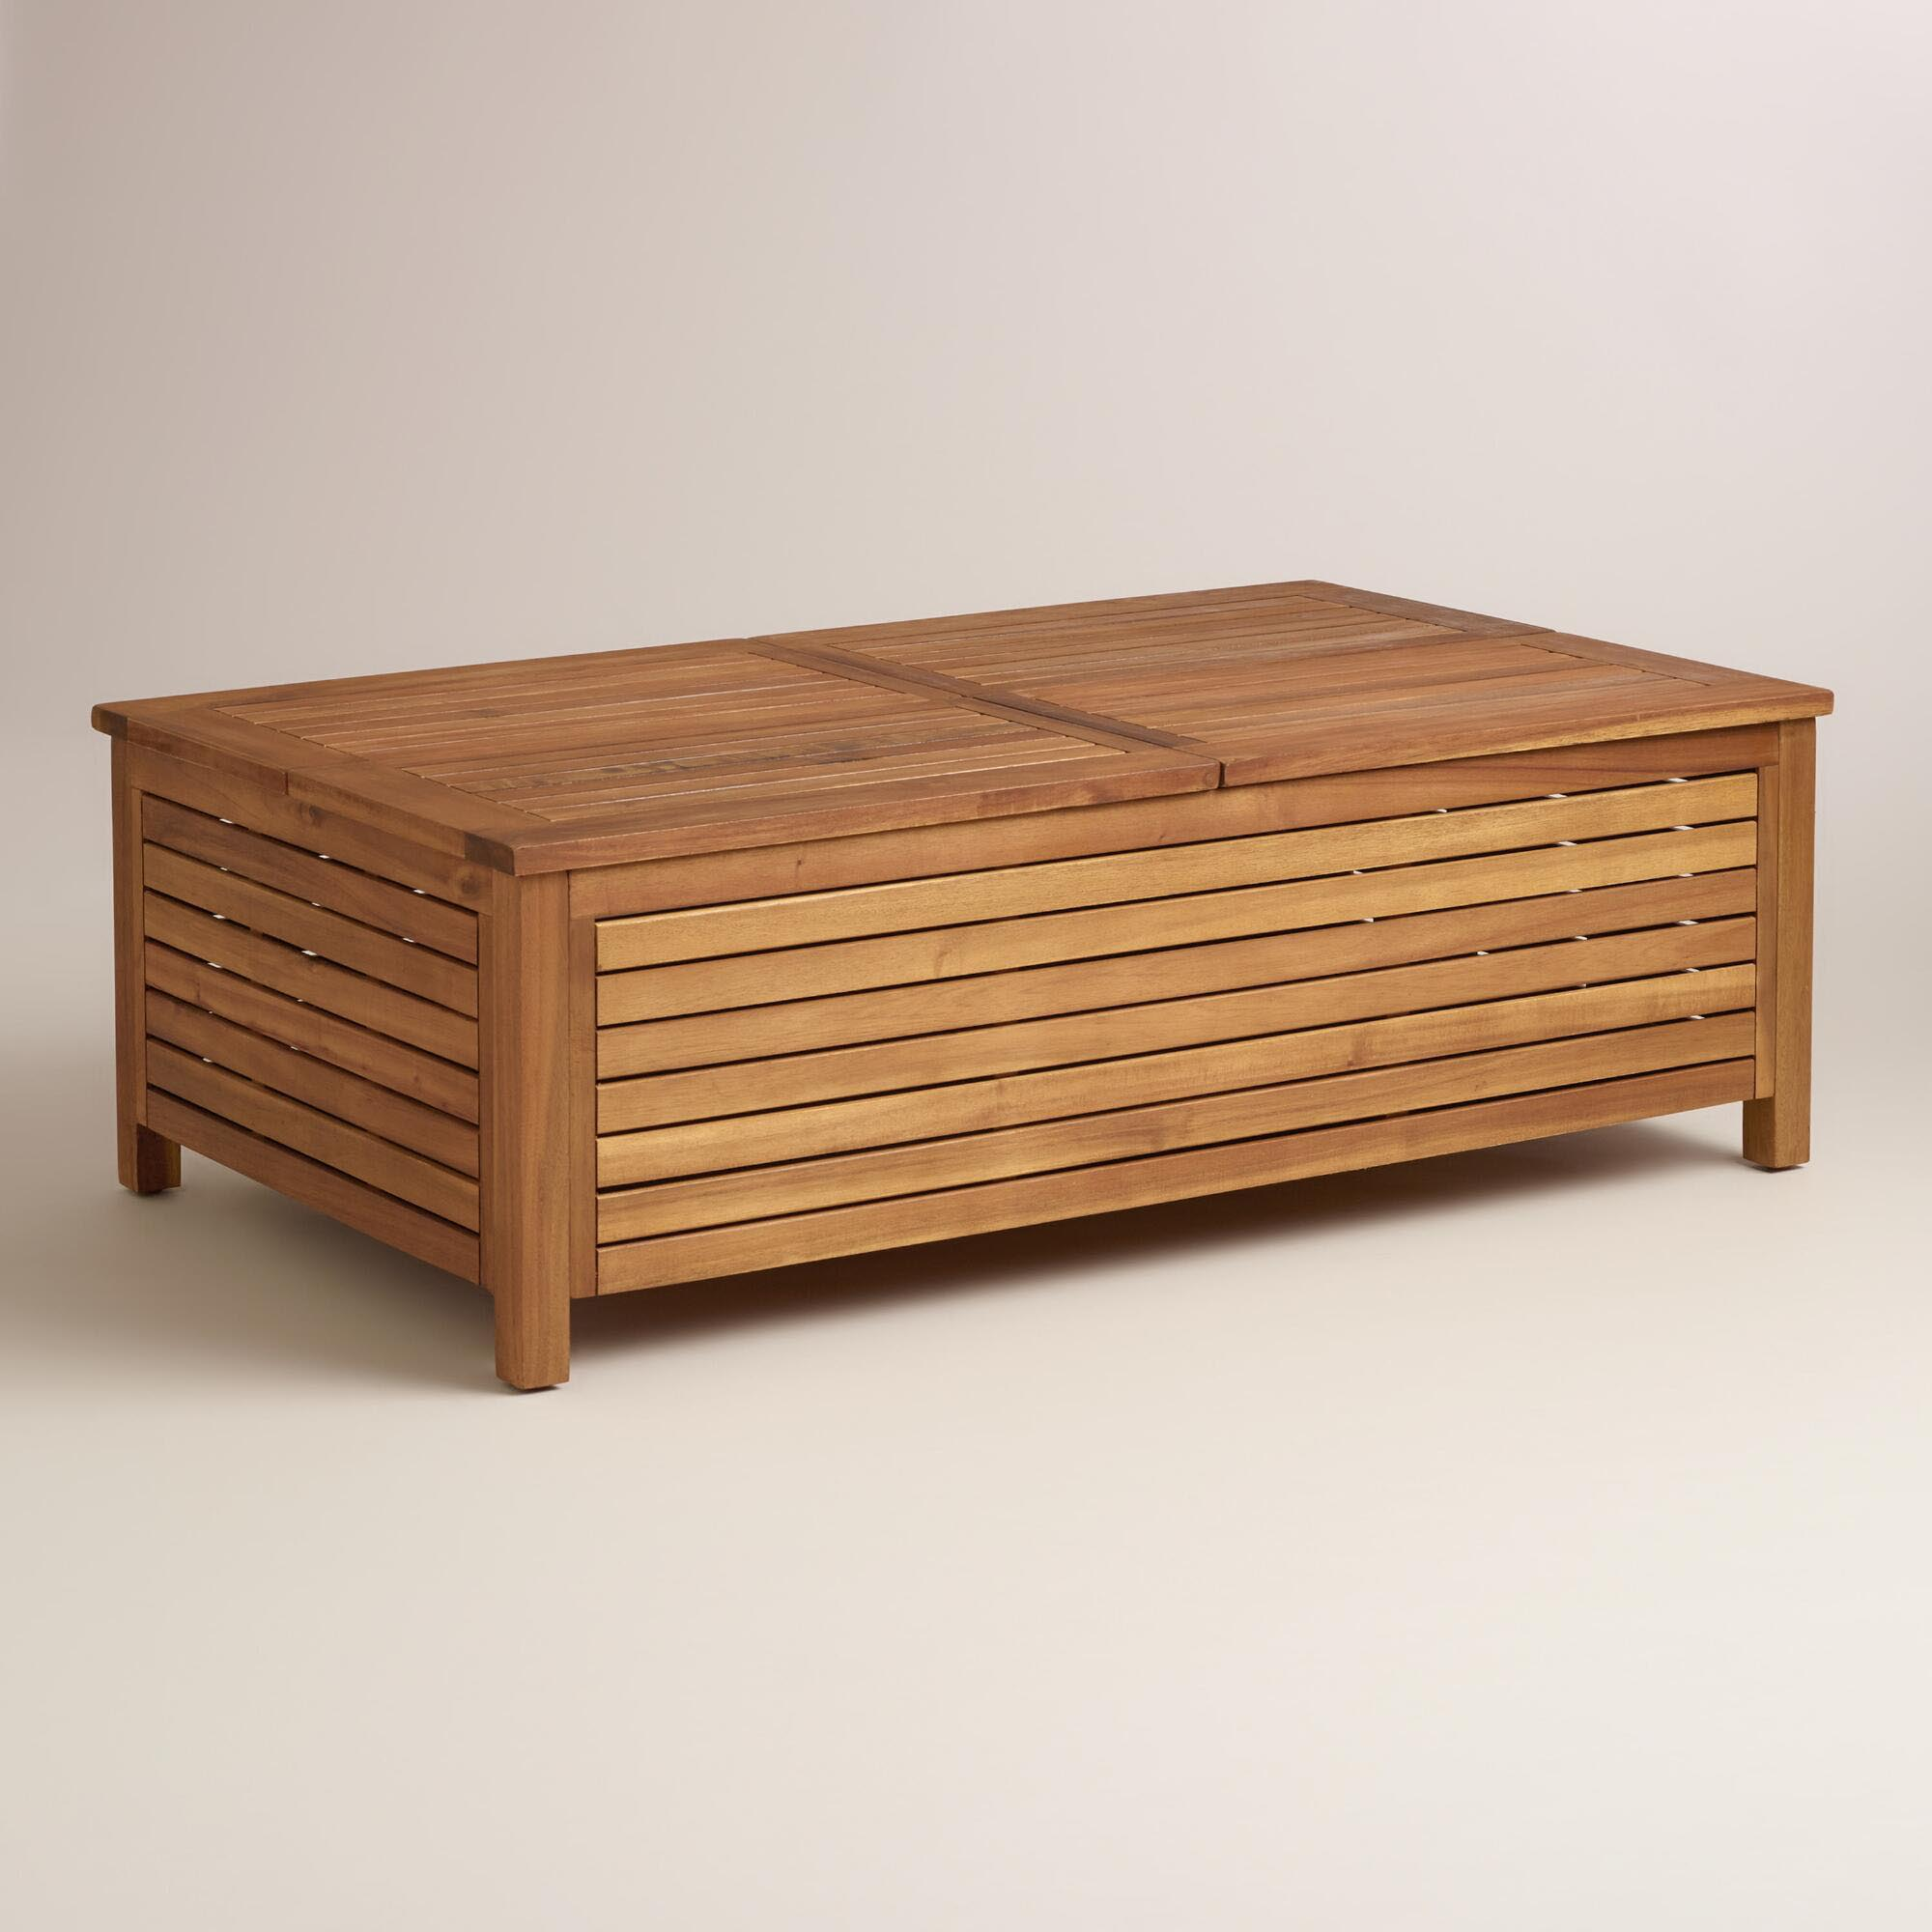 Patio storage coffee table coffee table design ideas Patio coffee tables